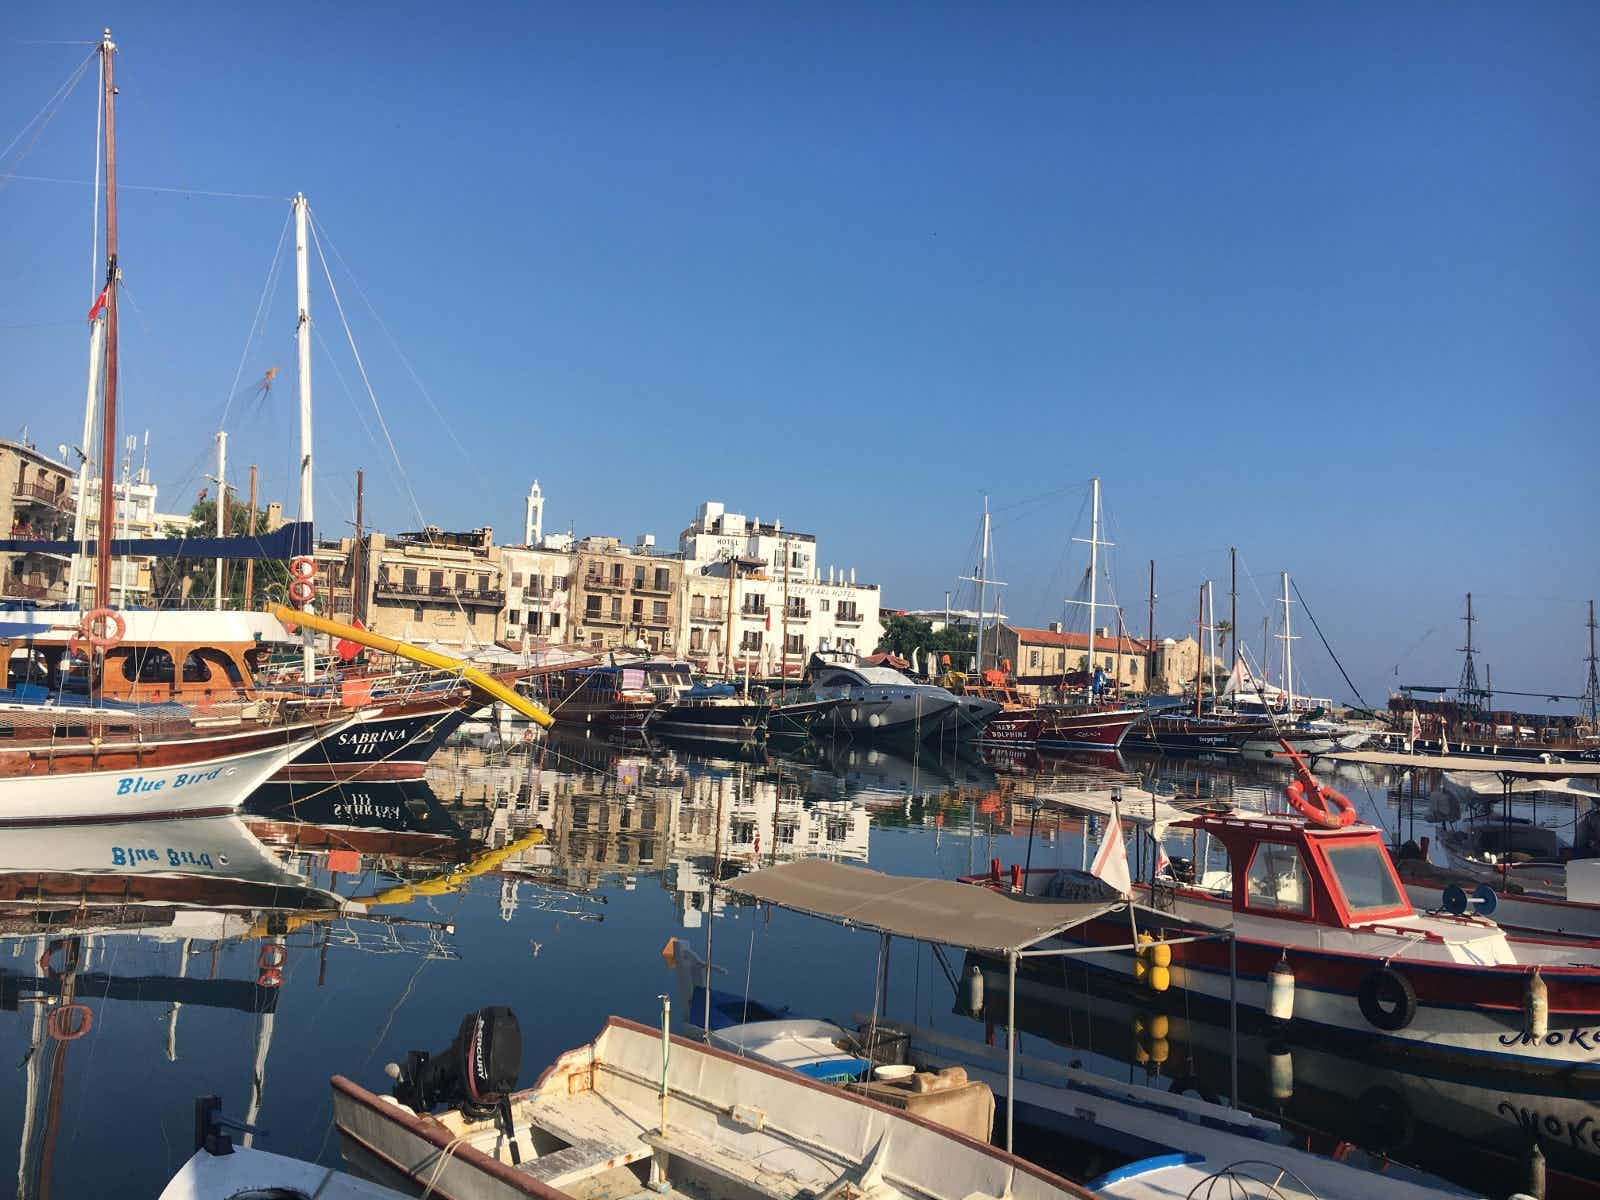 Fishing boats and traditional wooden ships moored in Kyrenia's old harbour © Brana Vladisavljevic / Lonely Planet